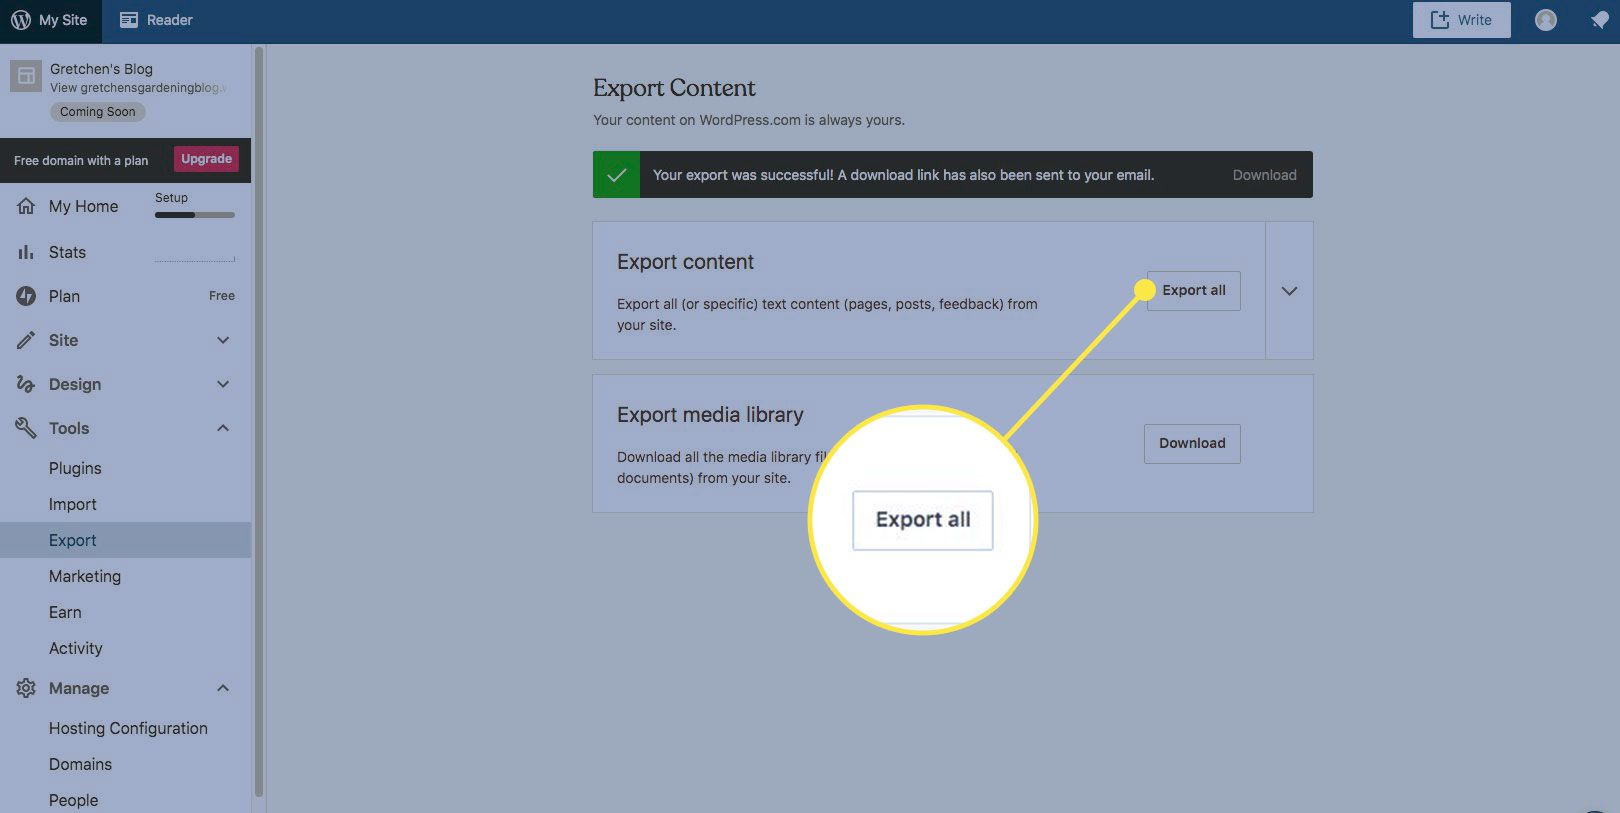 The Export All button